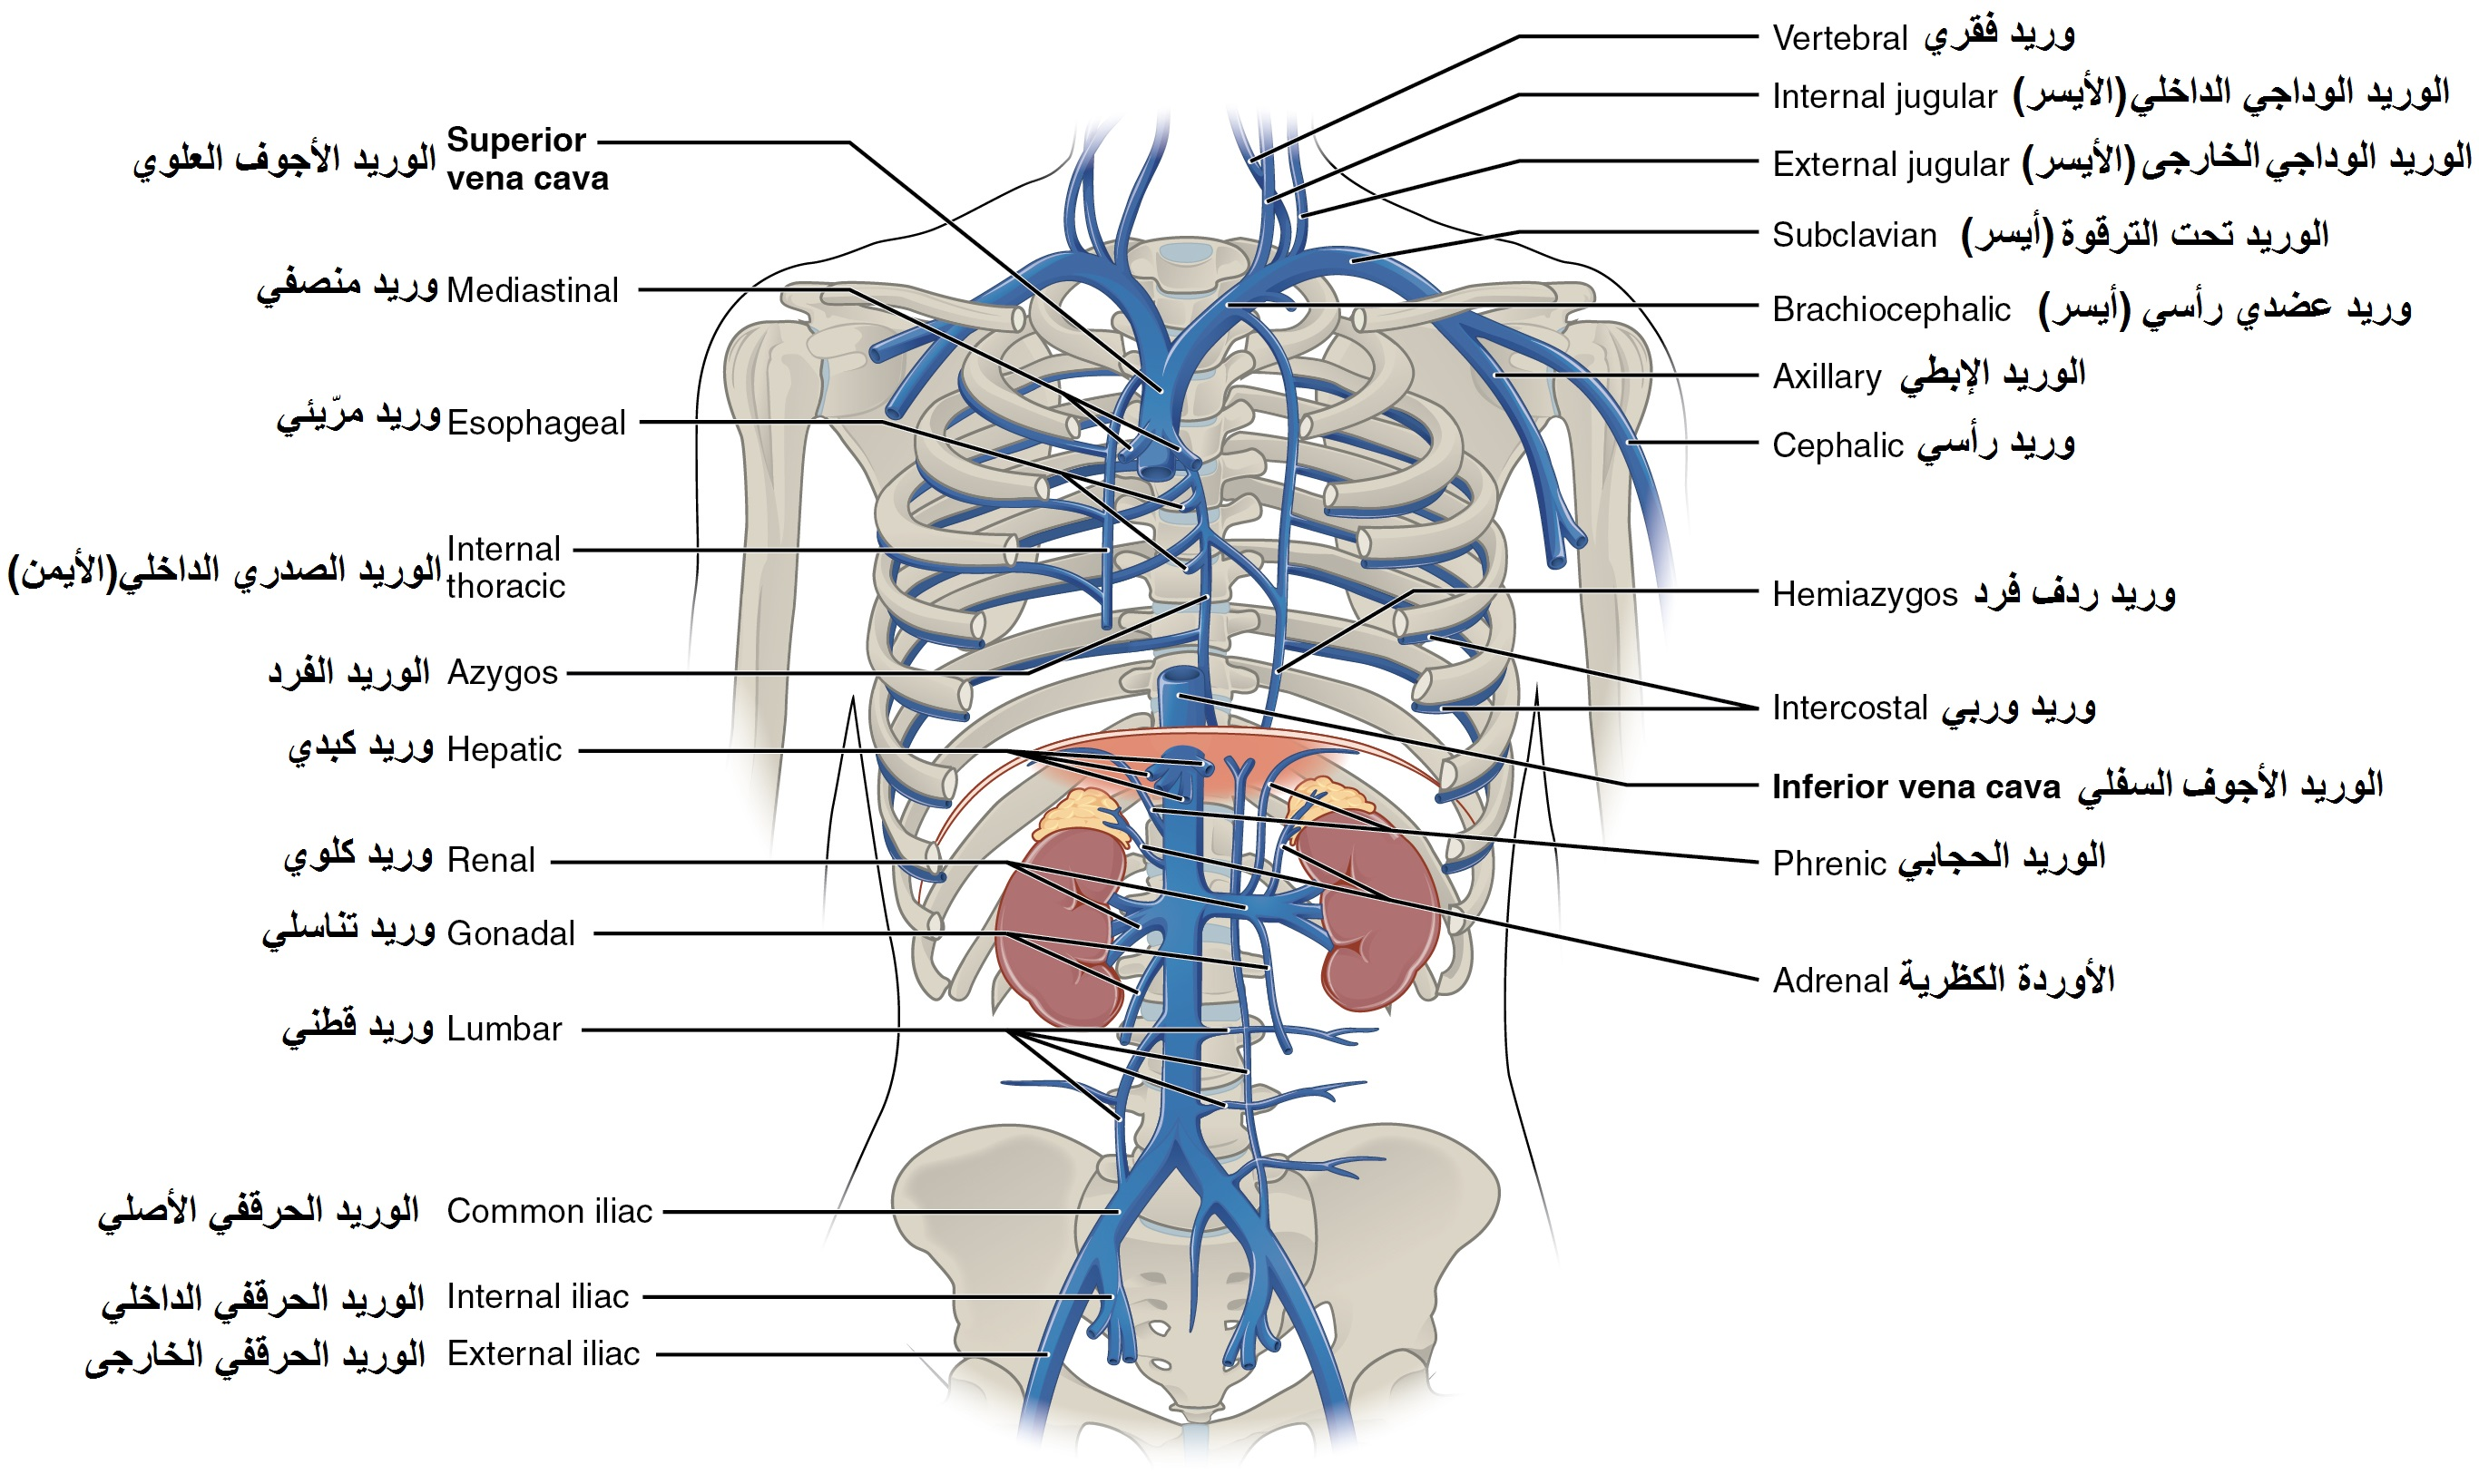 File2132 thoracic abdominal veins arabic ymg wikimedia commons file2132 thoracic abdominal veins arabic ymg ccuart Image collections